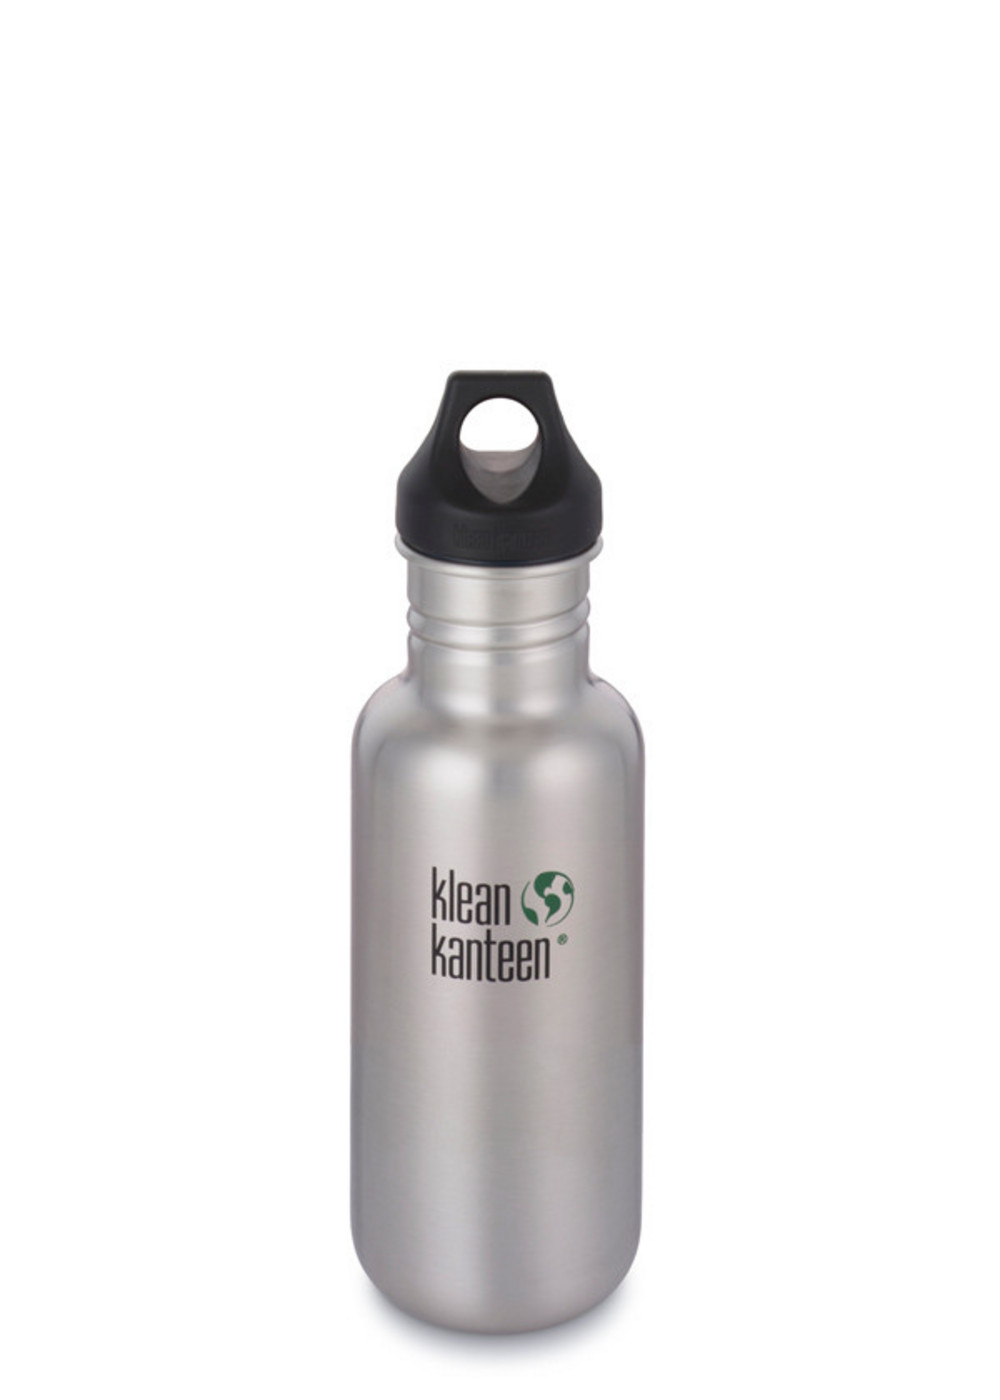 Klean Kanteen Classic 18oz Water Bottle Loop Cap